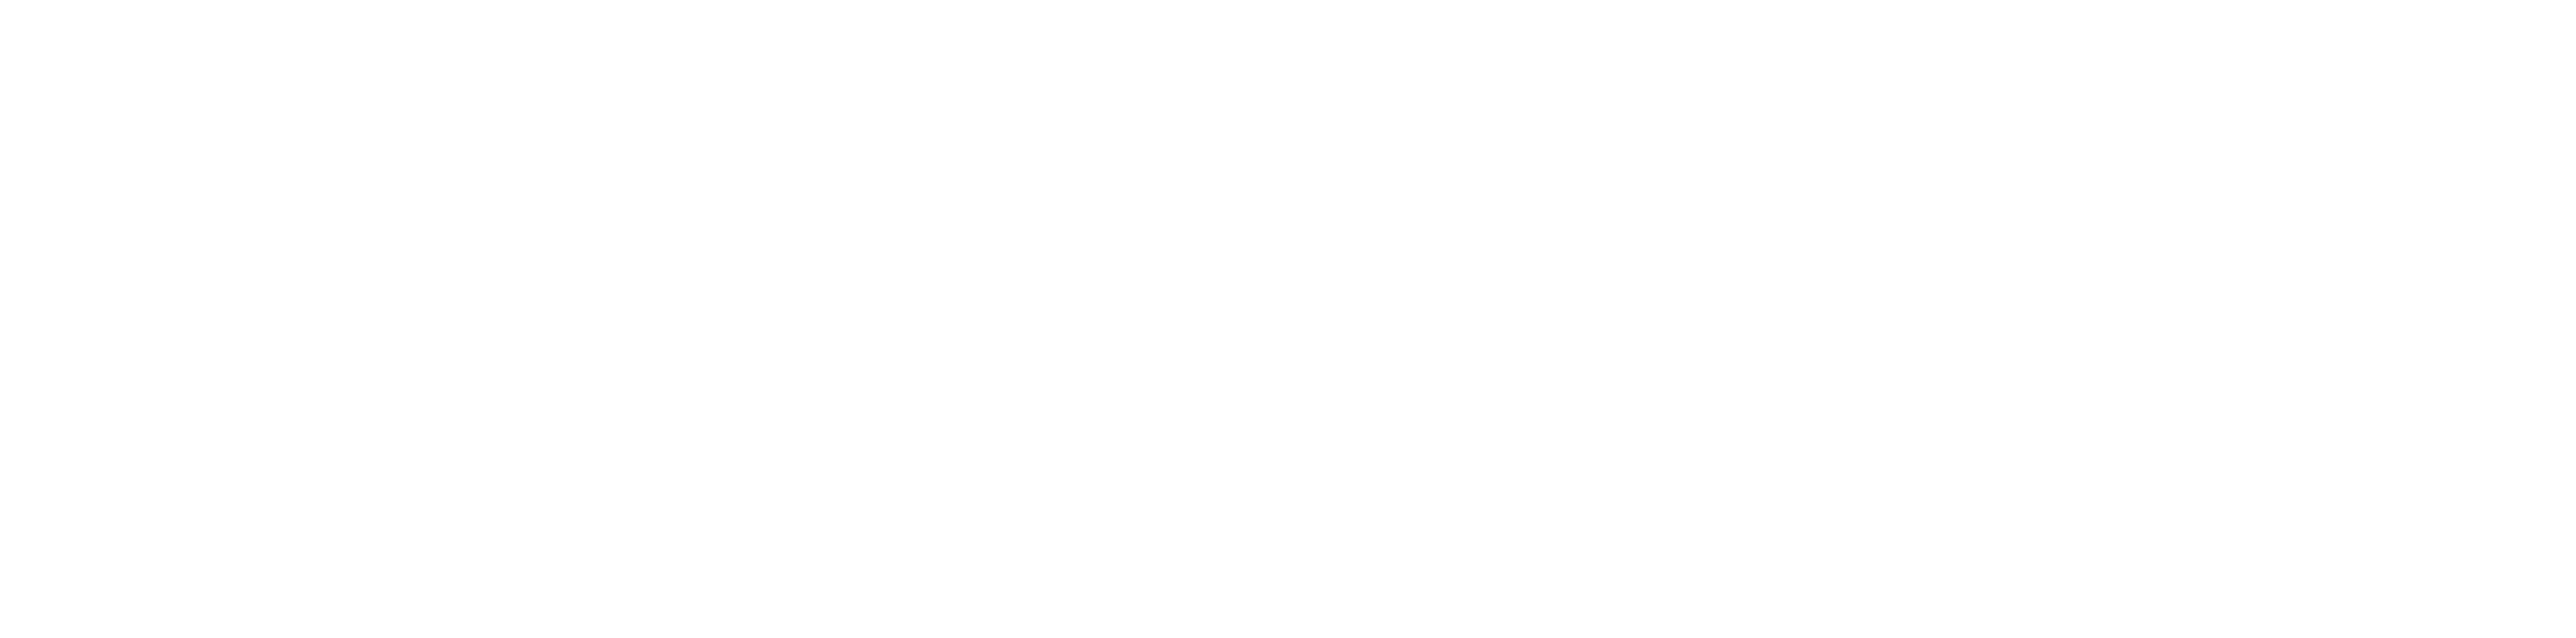 slovenia-activities-logo-BW-inverse